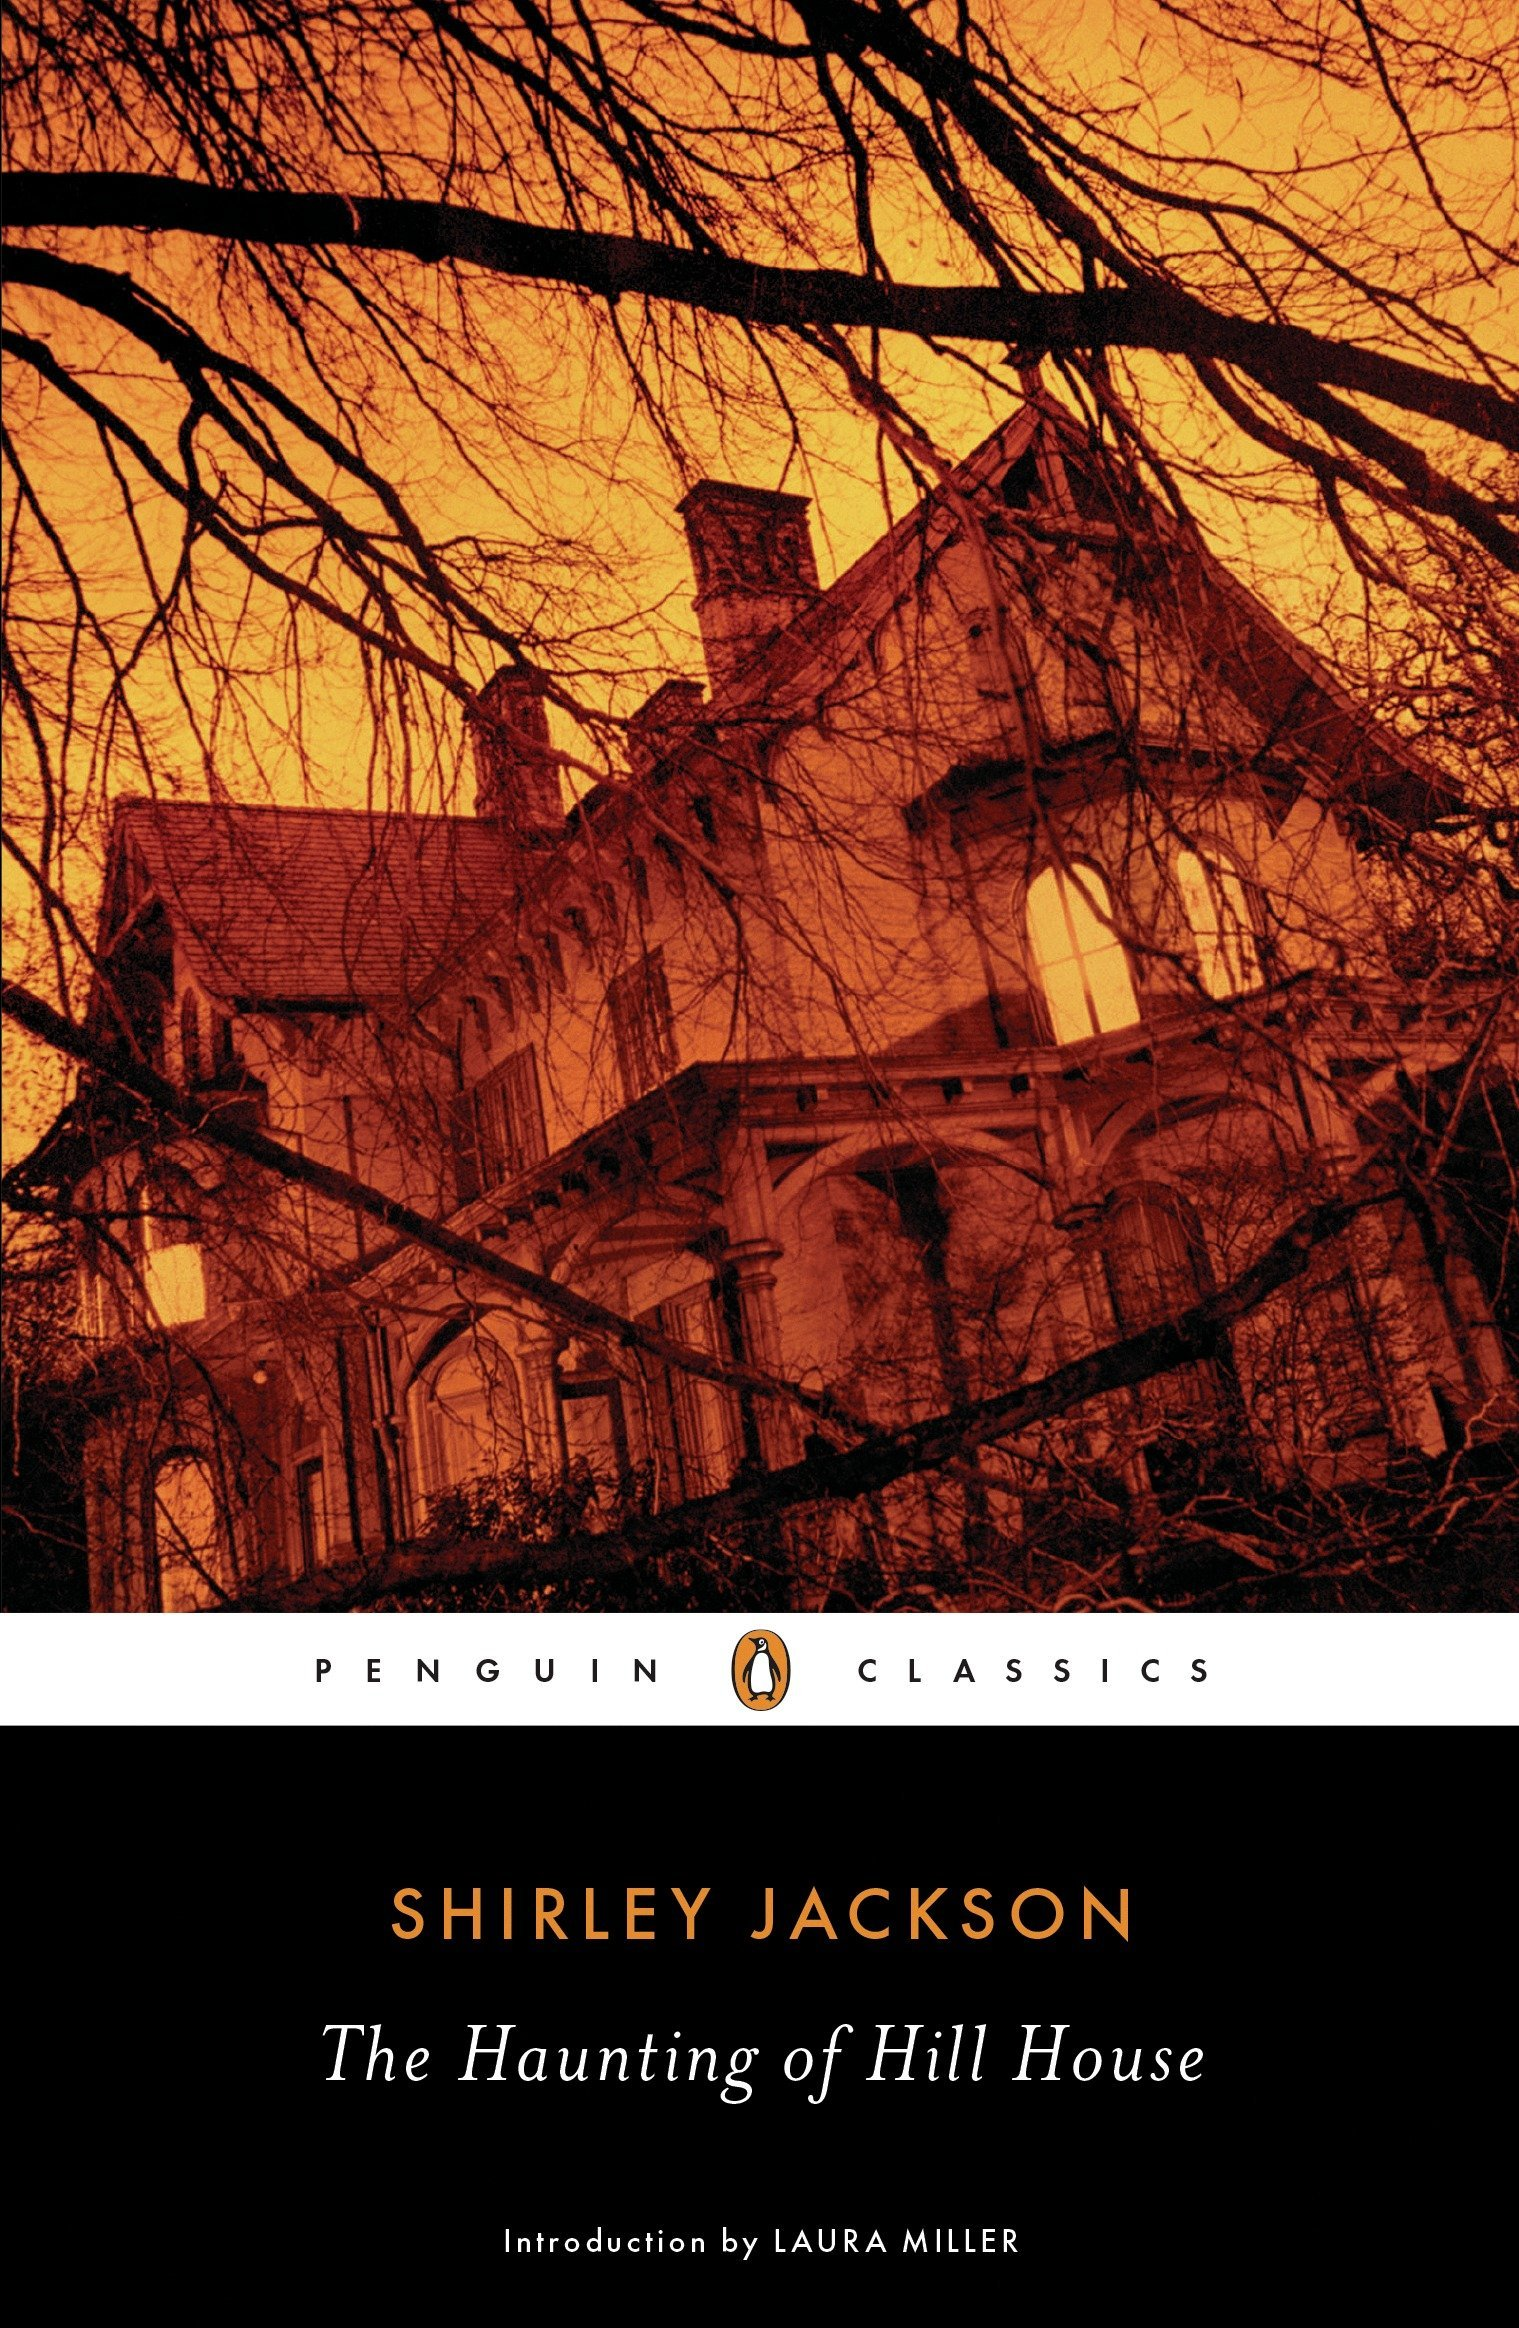 The haunting of hill house livros na amazon brasil 9780143039983 fandeluxe Images